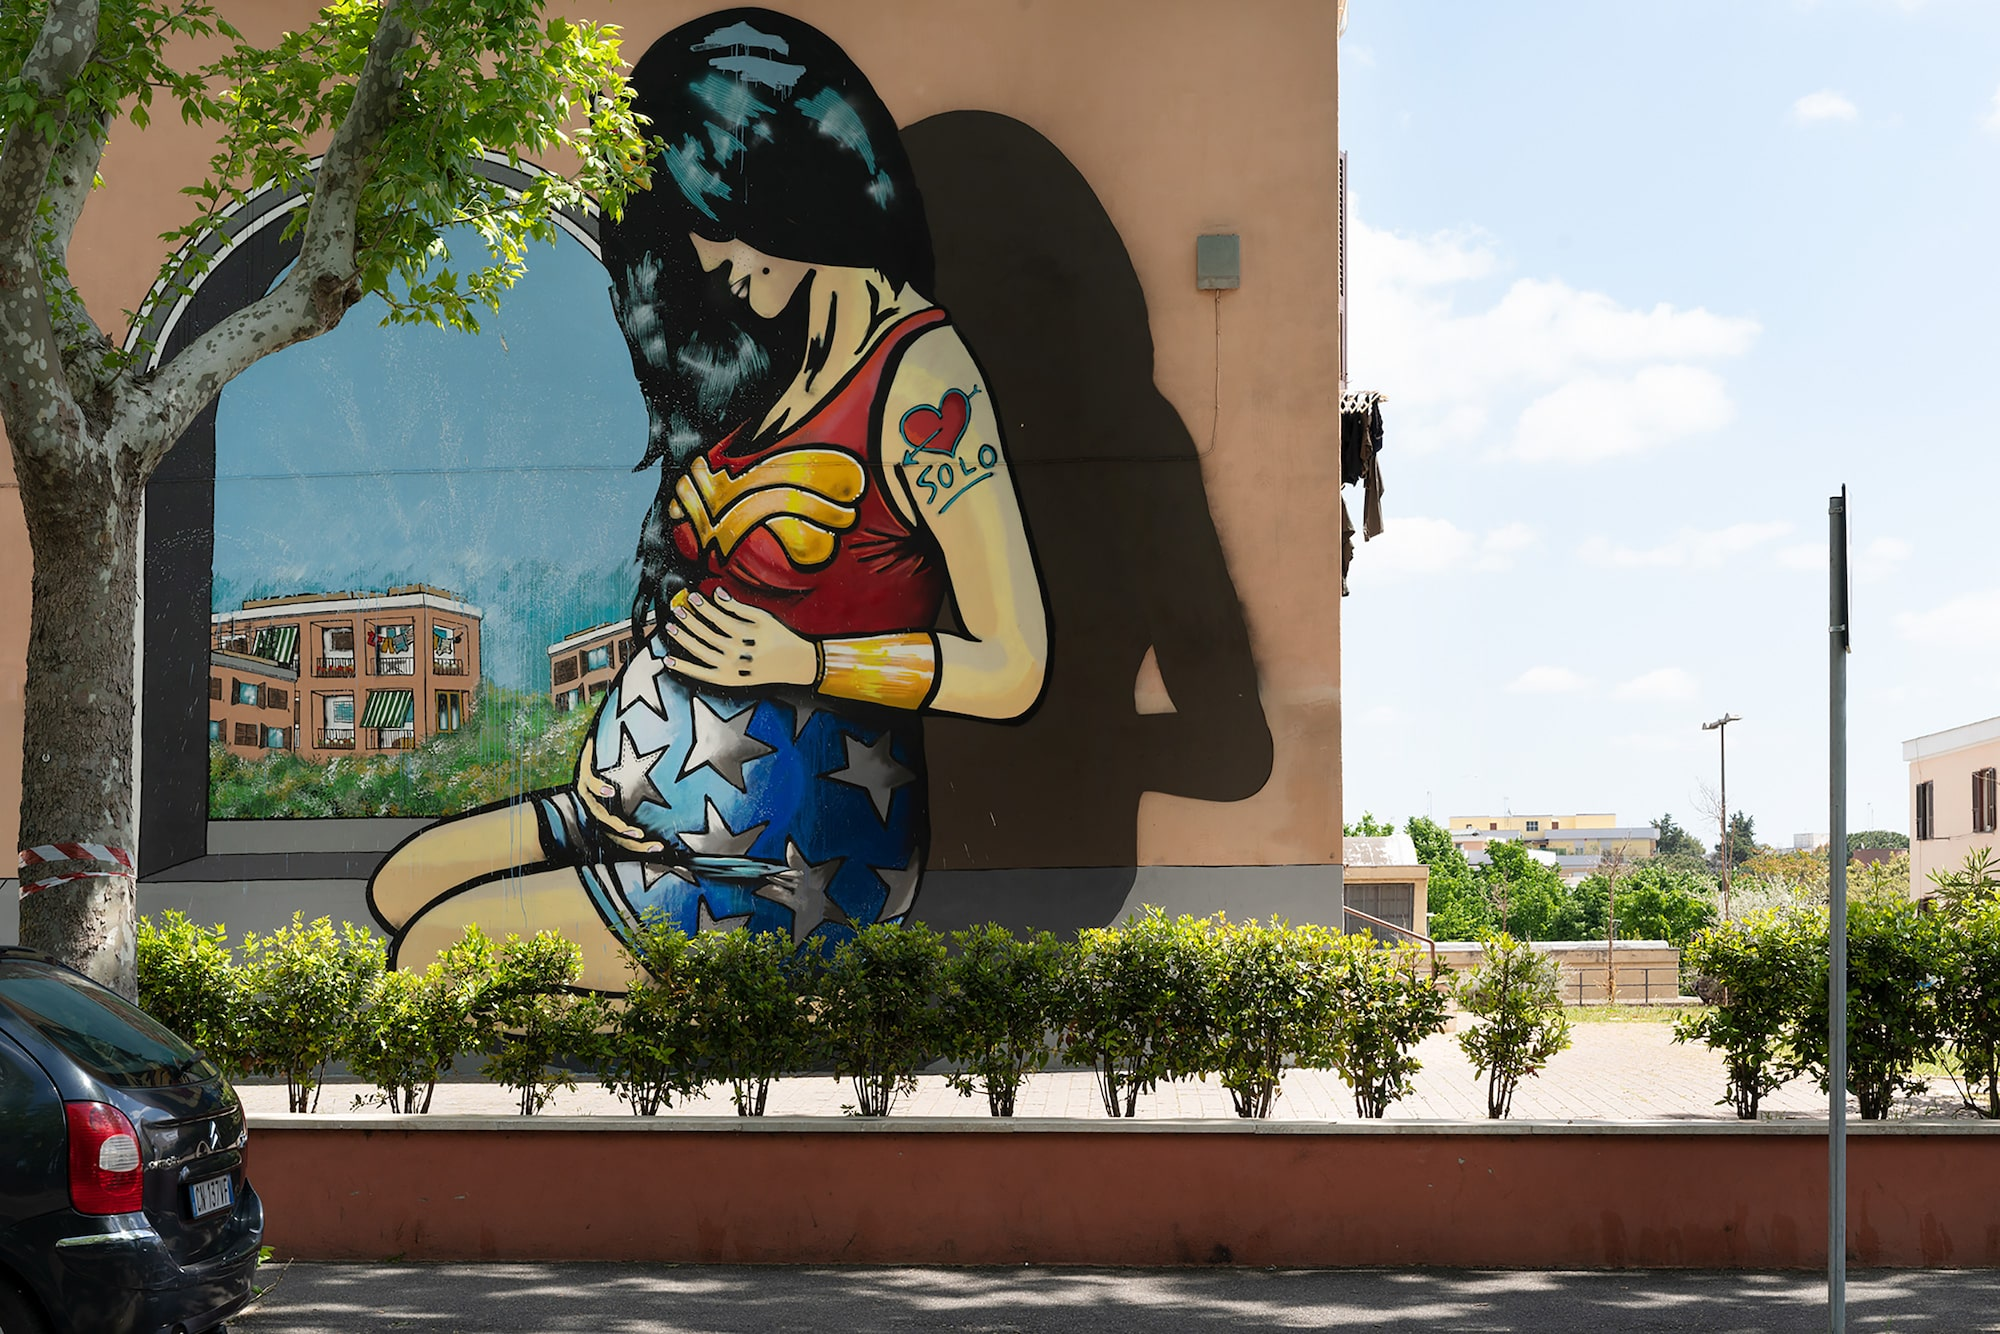 Massimo Siragusa sony alpha 7RM2 a wall painted mural of a pregnant wonder woman